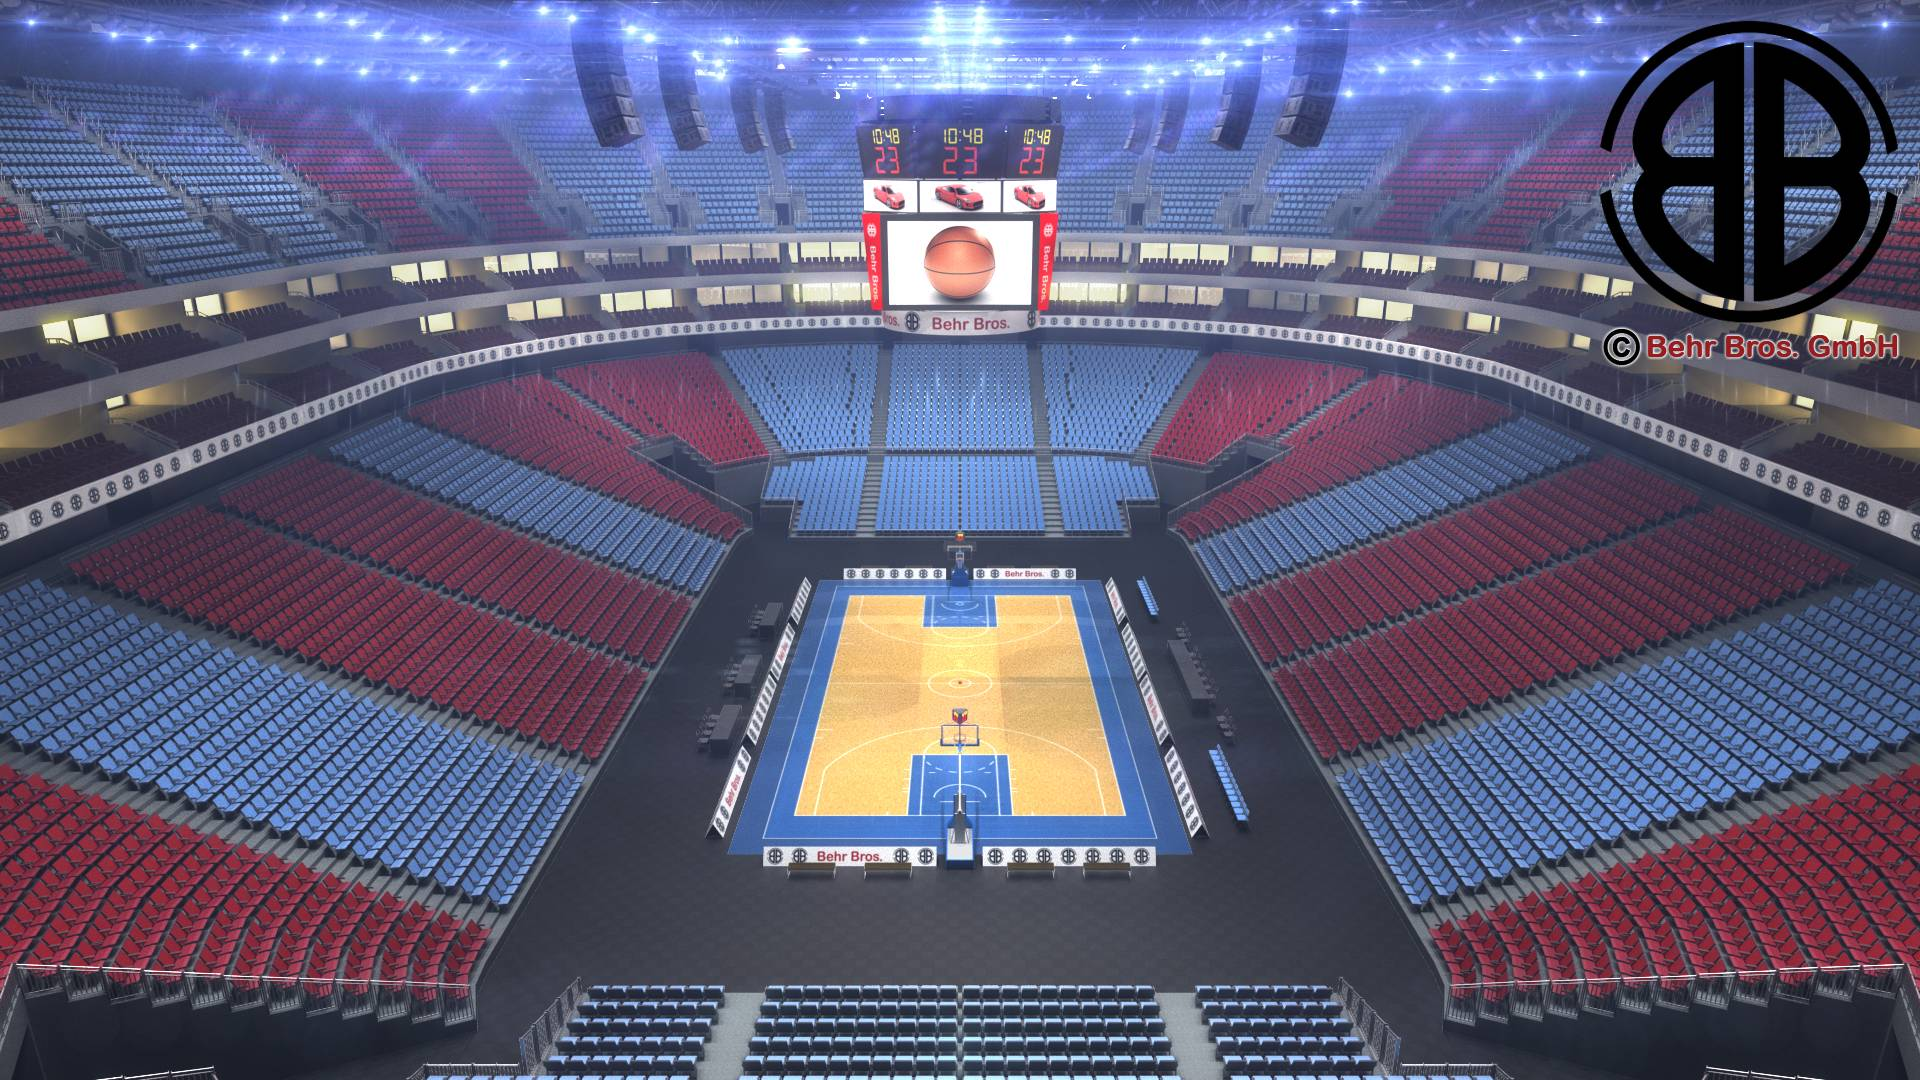 basketbol arenası v2 3d model 3ds max fbx c4d lwo ma mb obj 222363